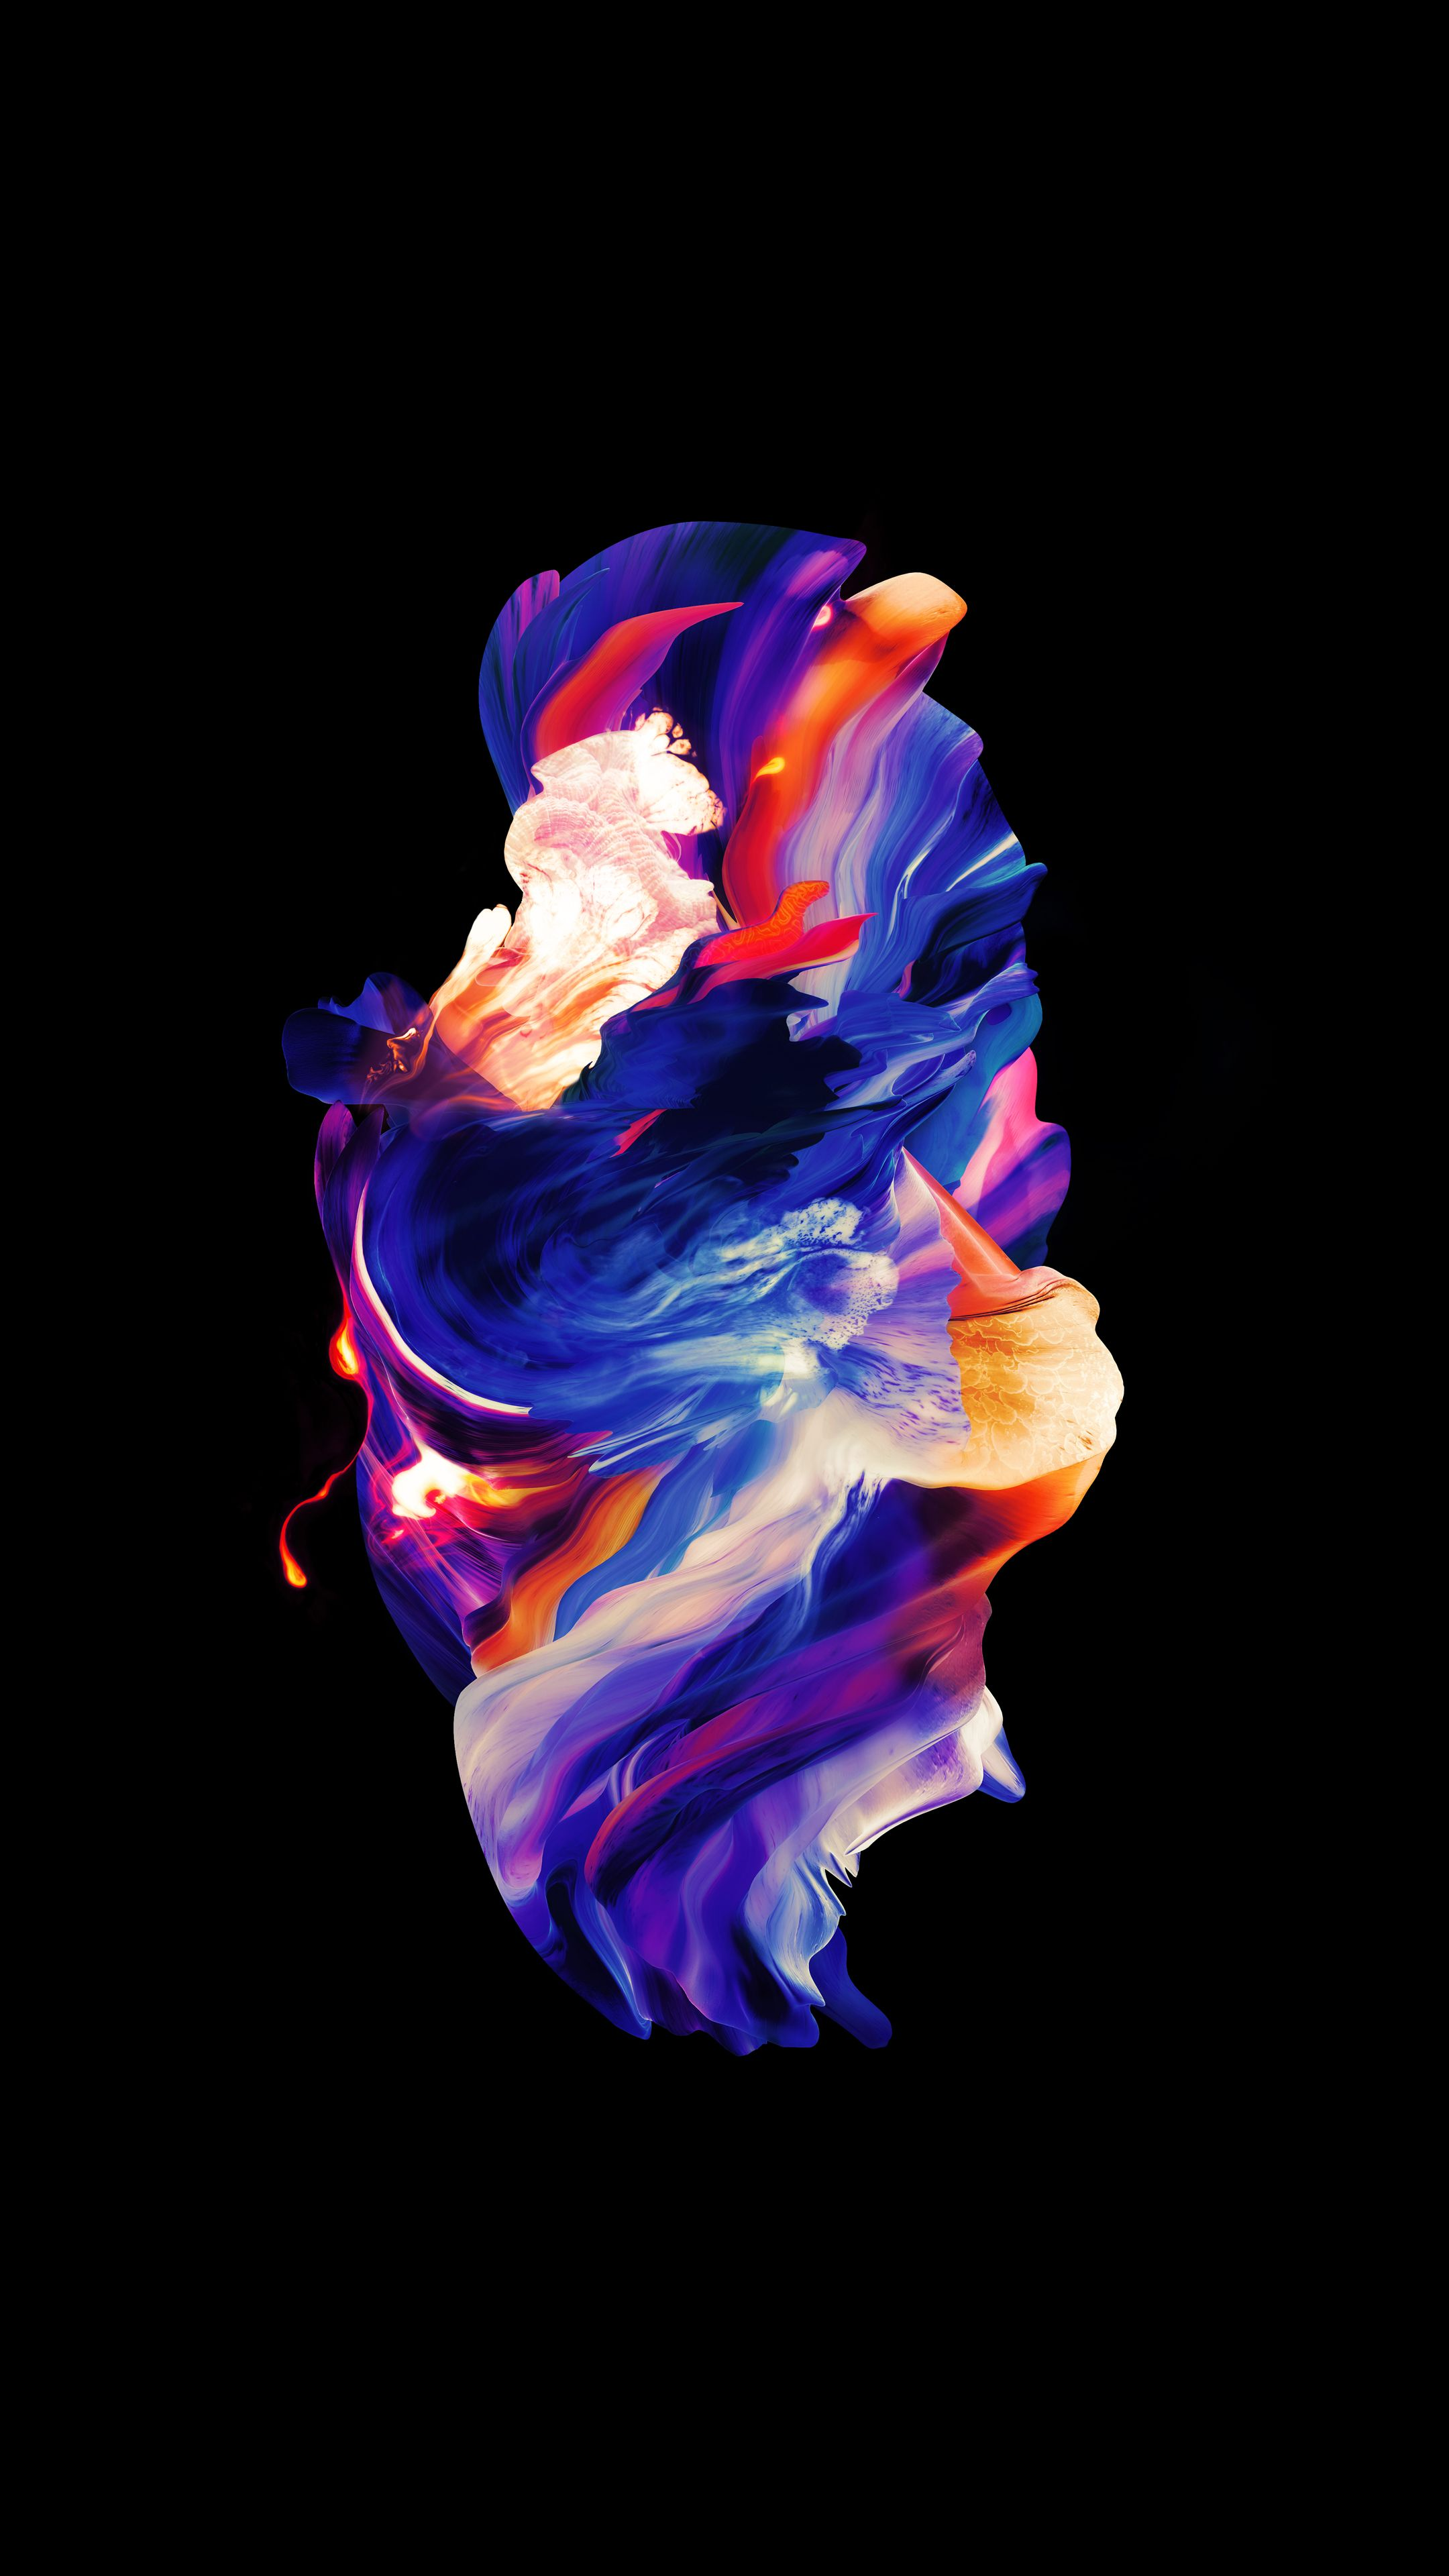 Liquid Iphone X Wallpapers Top Free Liquid Iphone X